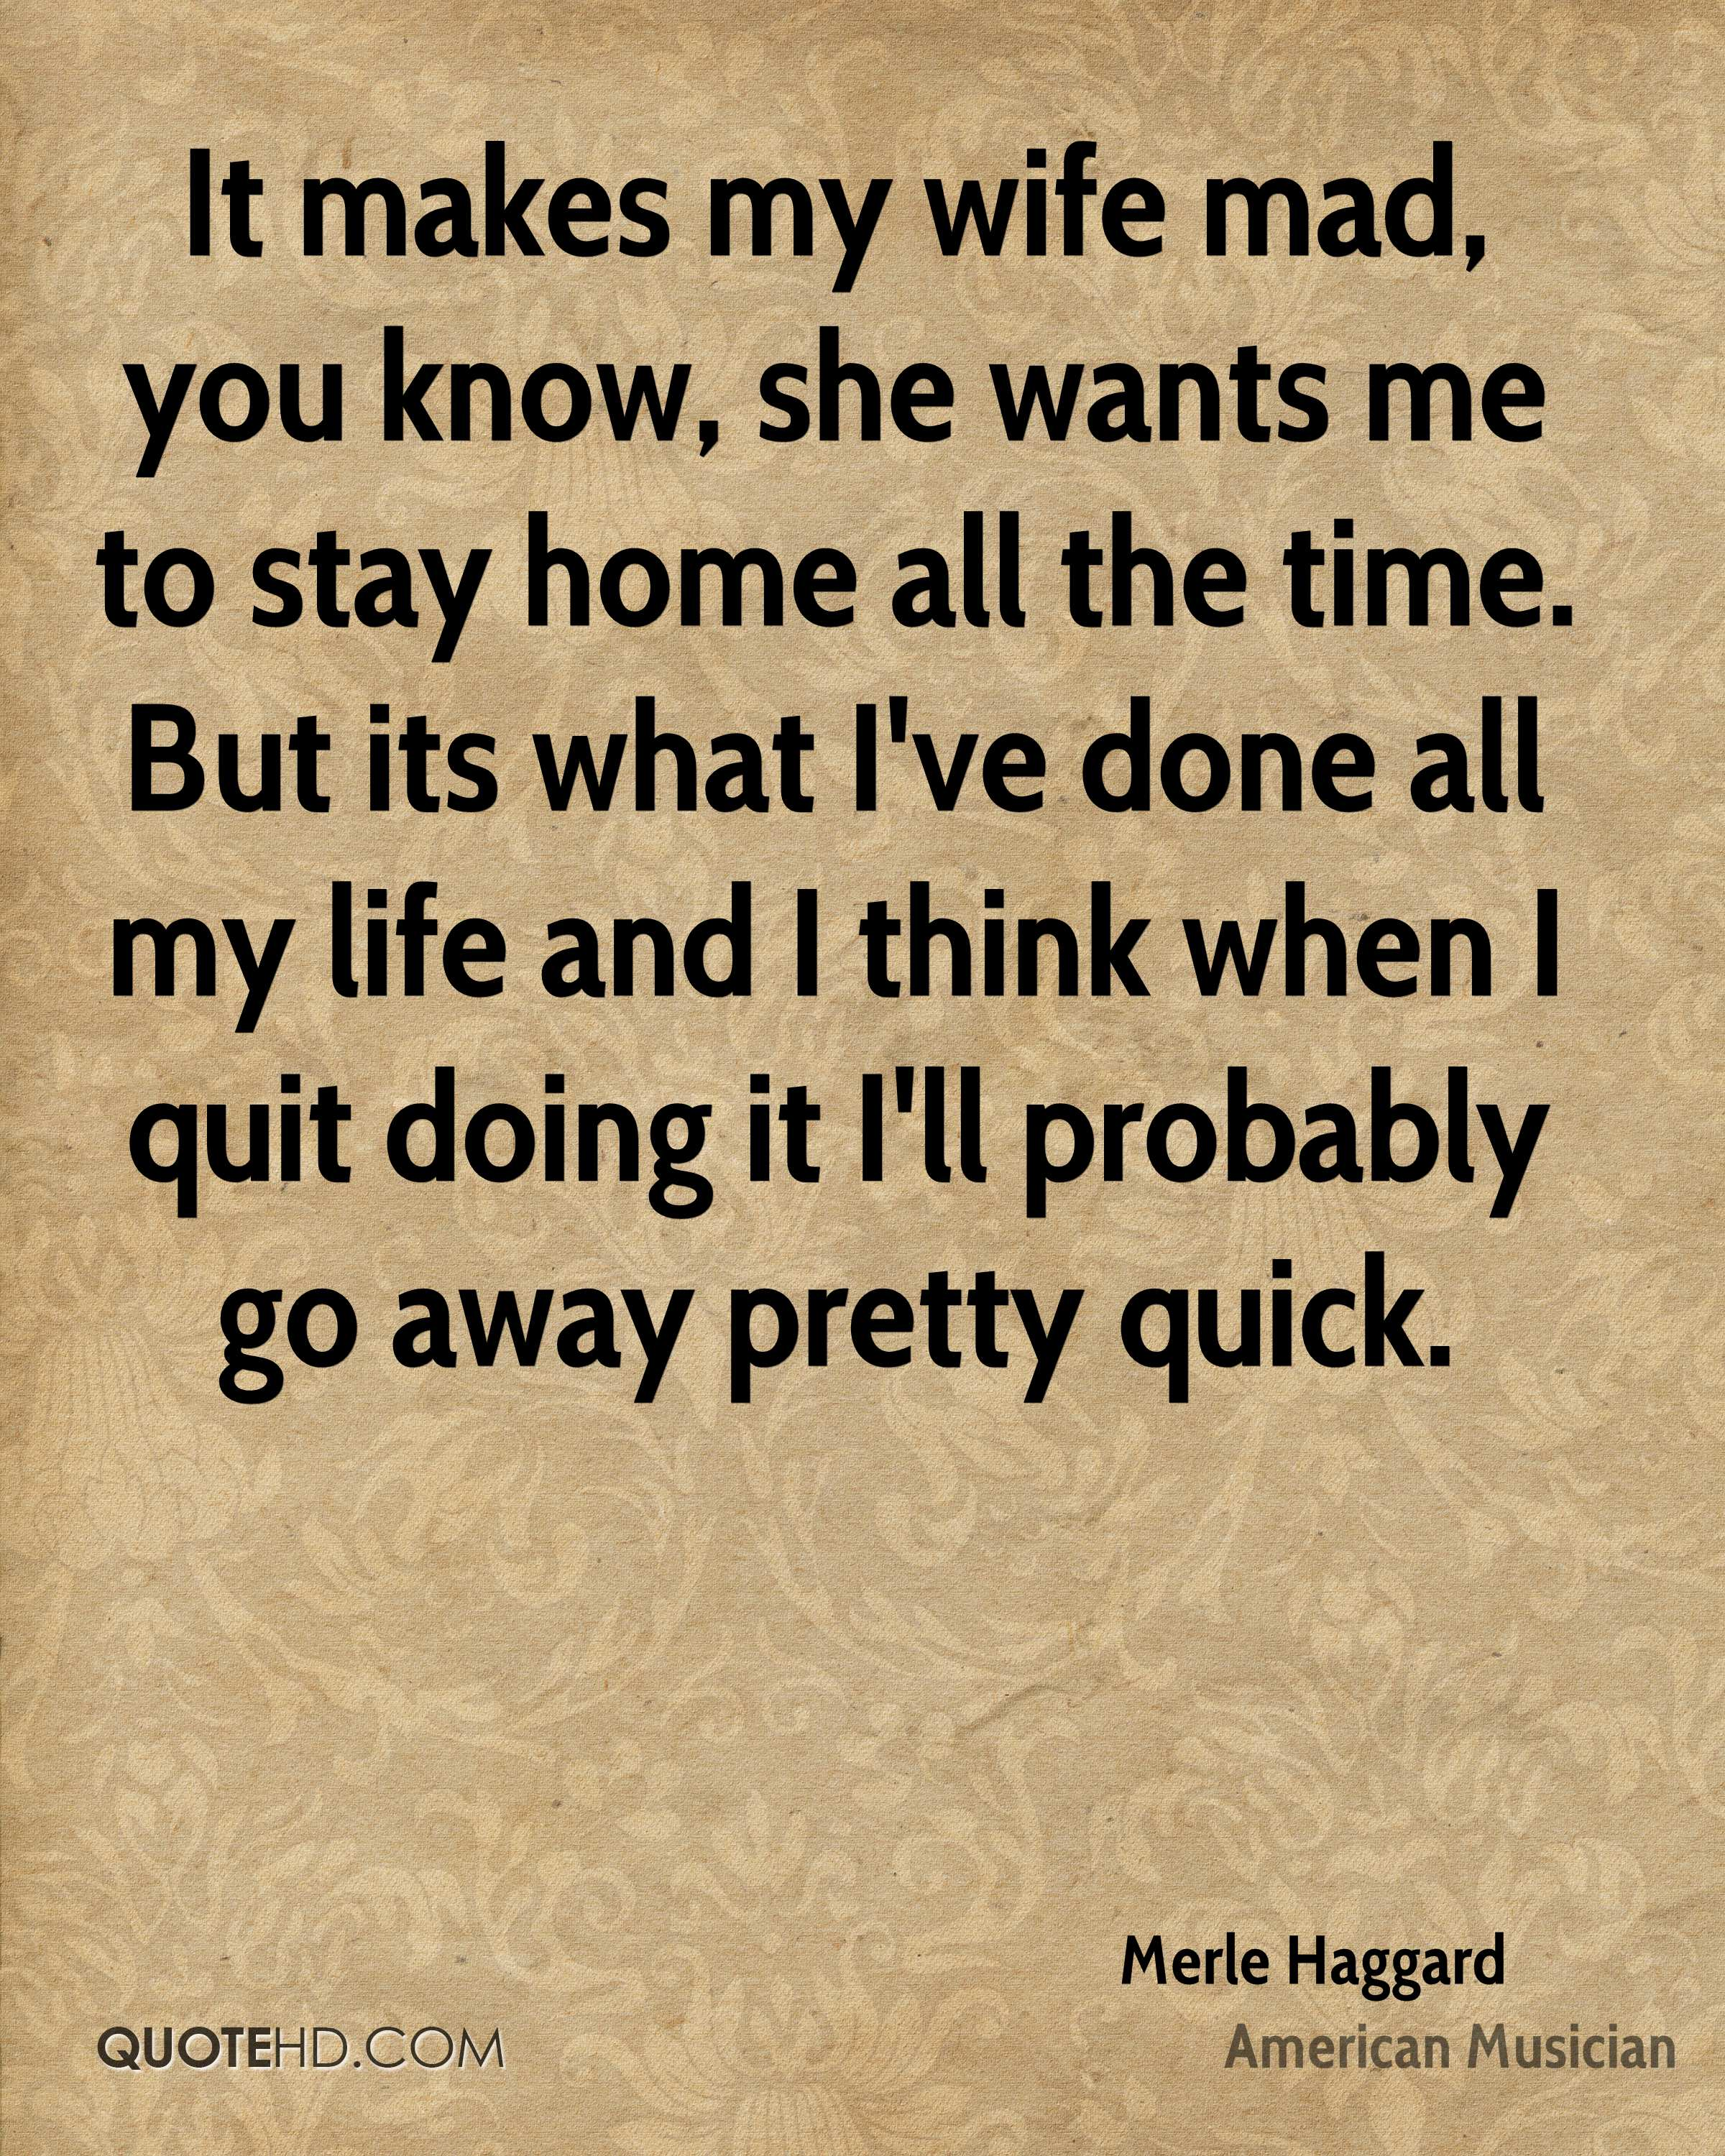 It makes my wife mad, you know, she wants me to stay home all the time. But its what I've done all my life and I think when I quit doing it I'll probably go away pretty quick.